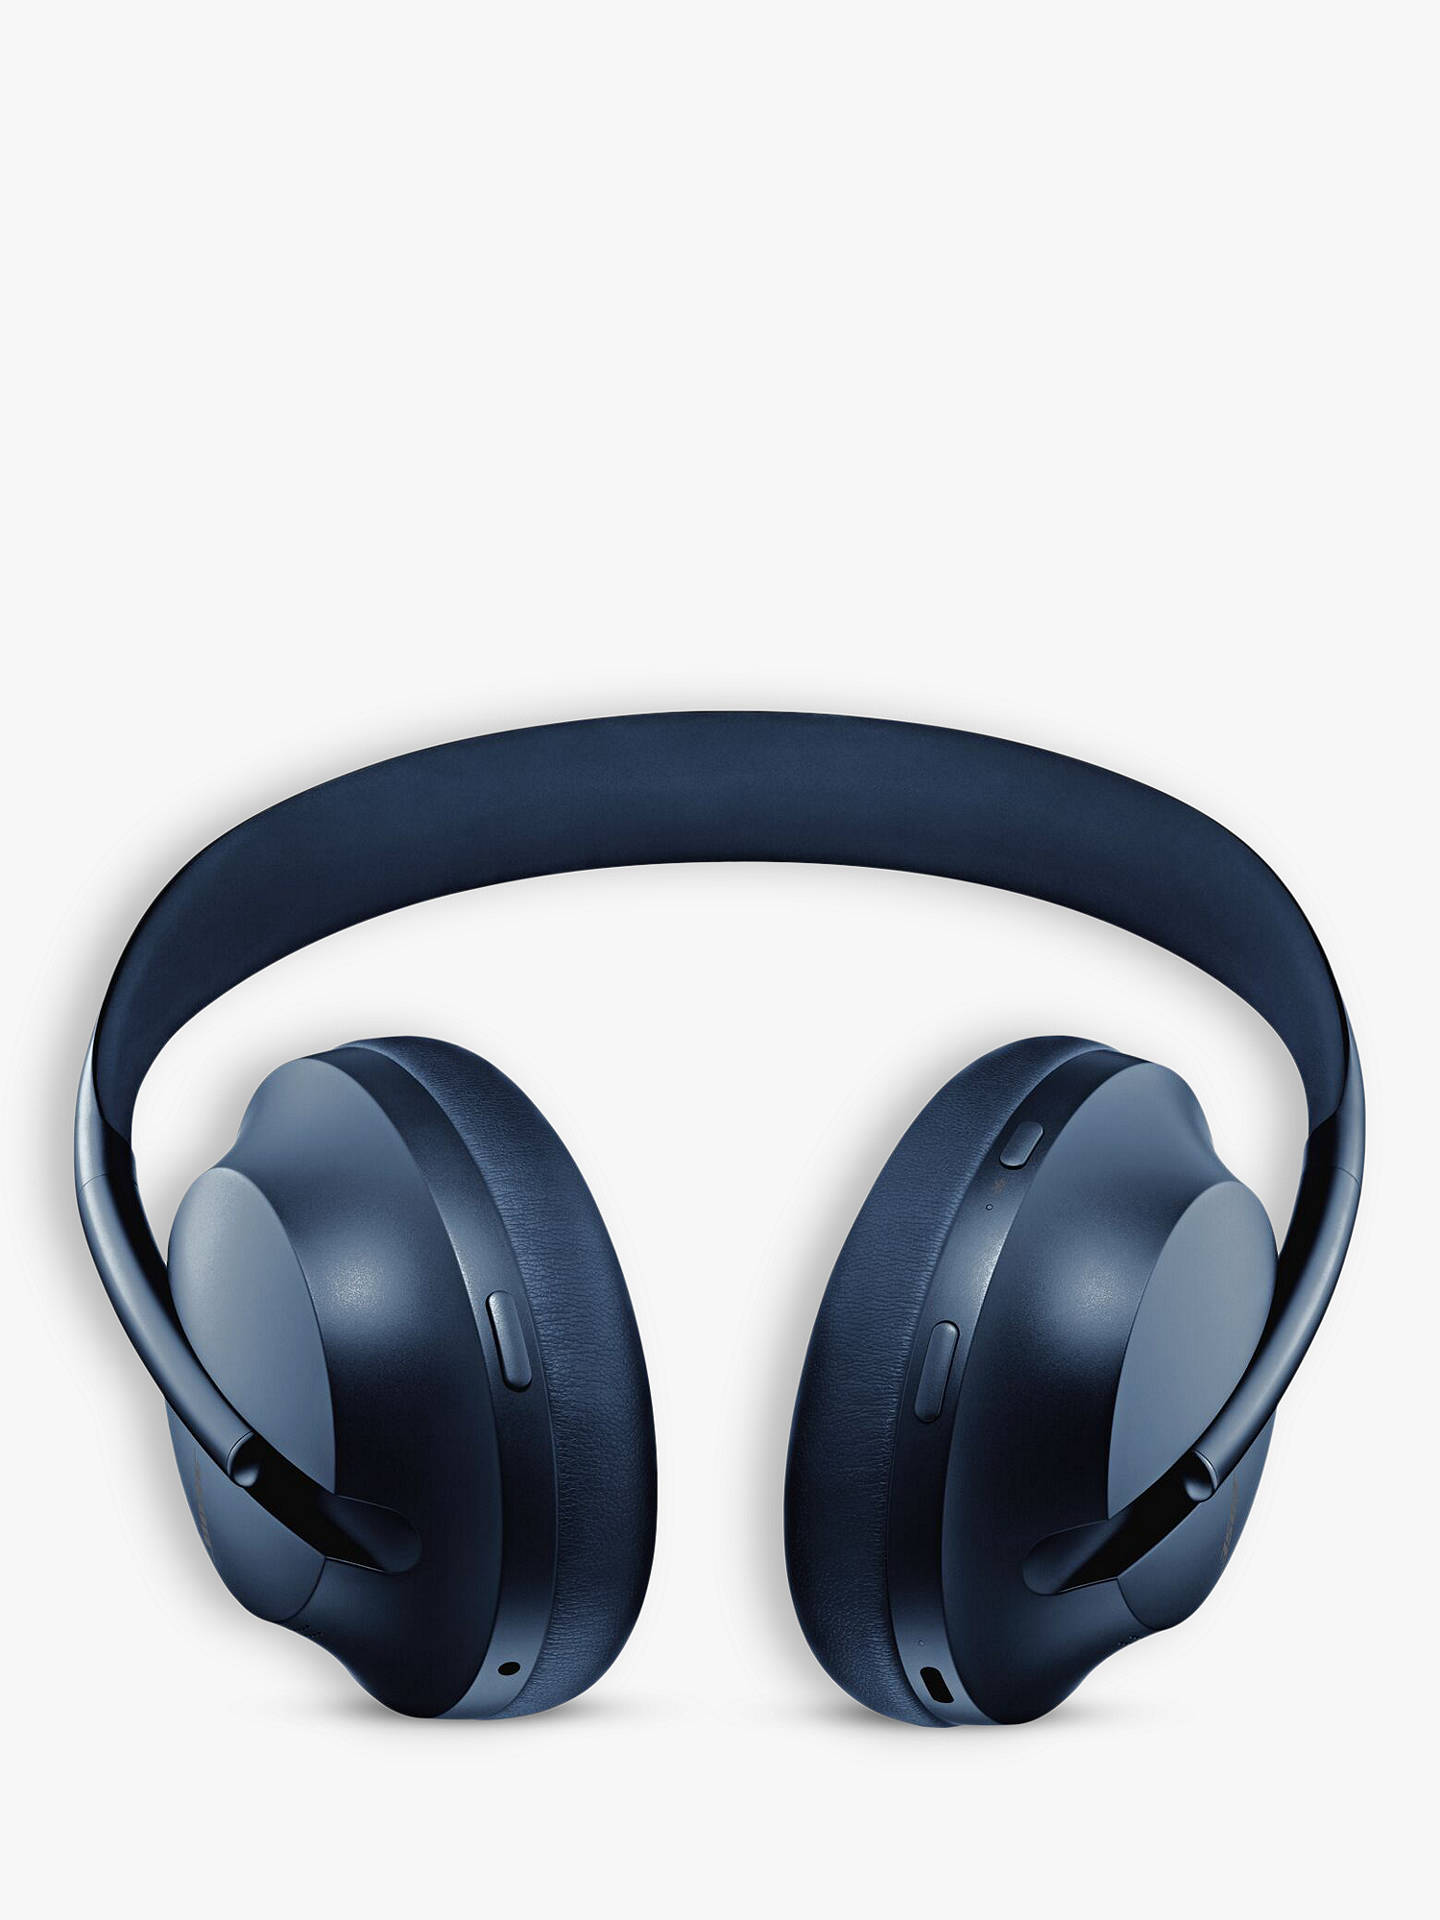 Buy Bose® 700 Noise Cancelling Over-Ear Wireless Bluetooth Headphones with Mic/Remote, Triple Midnight Blue Online at johnlewis.com